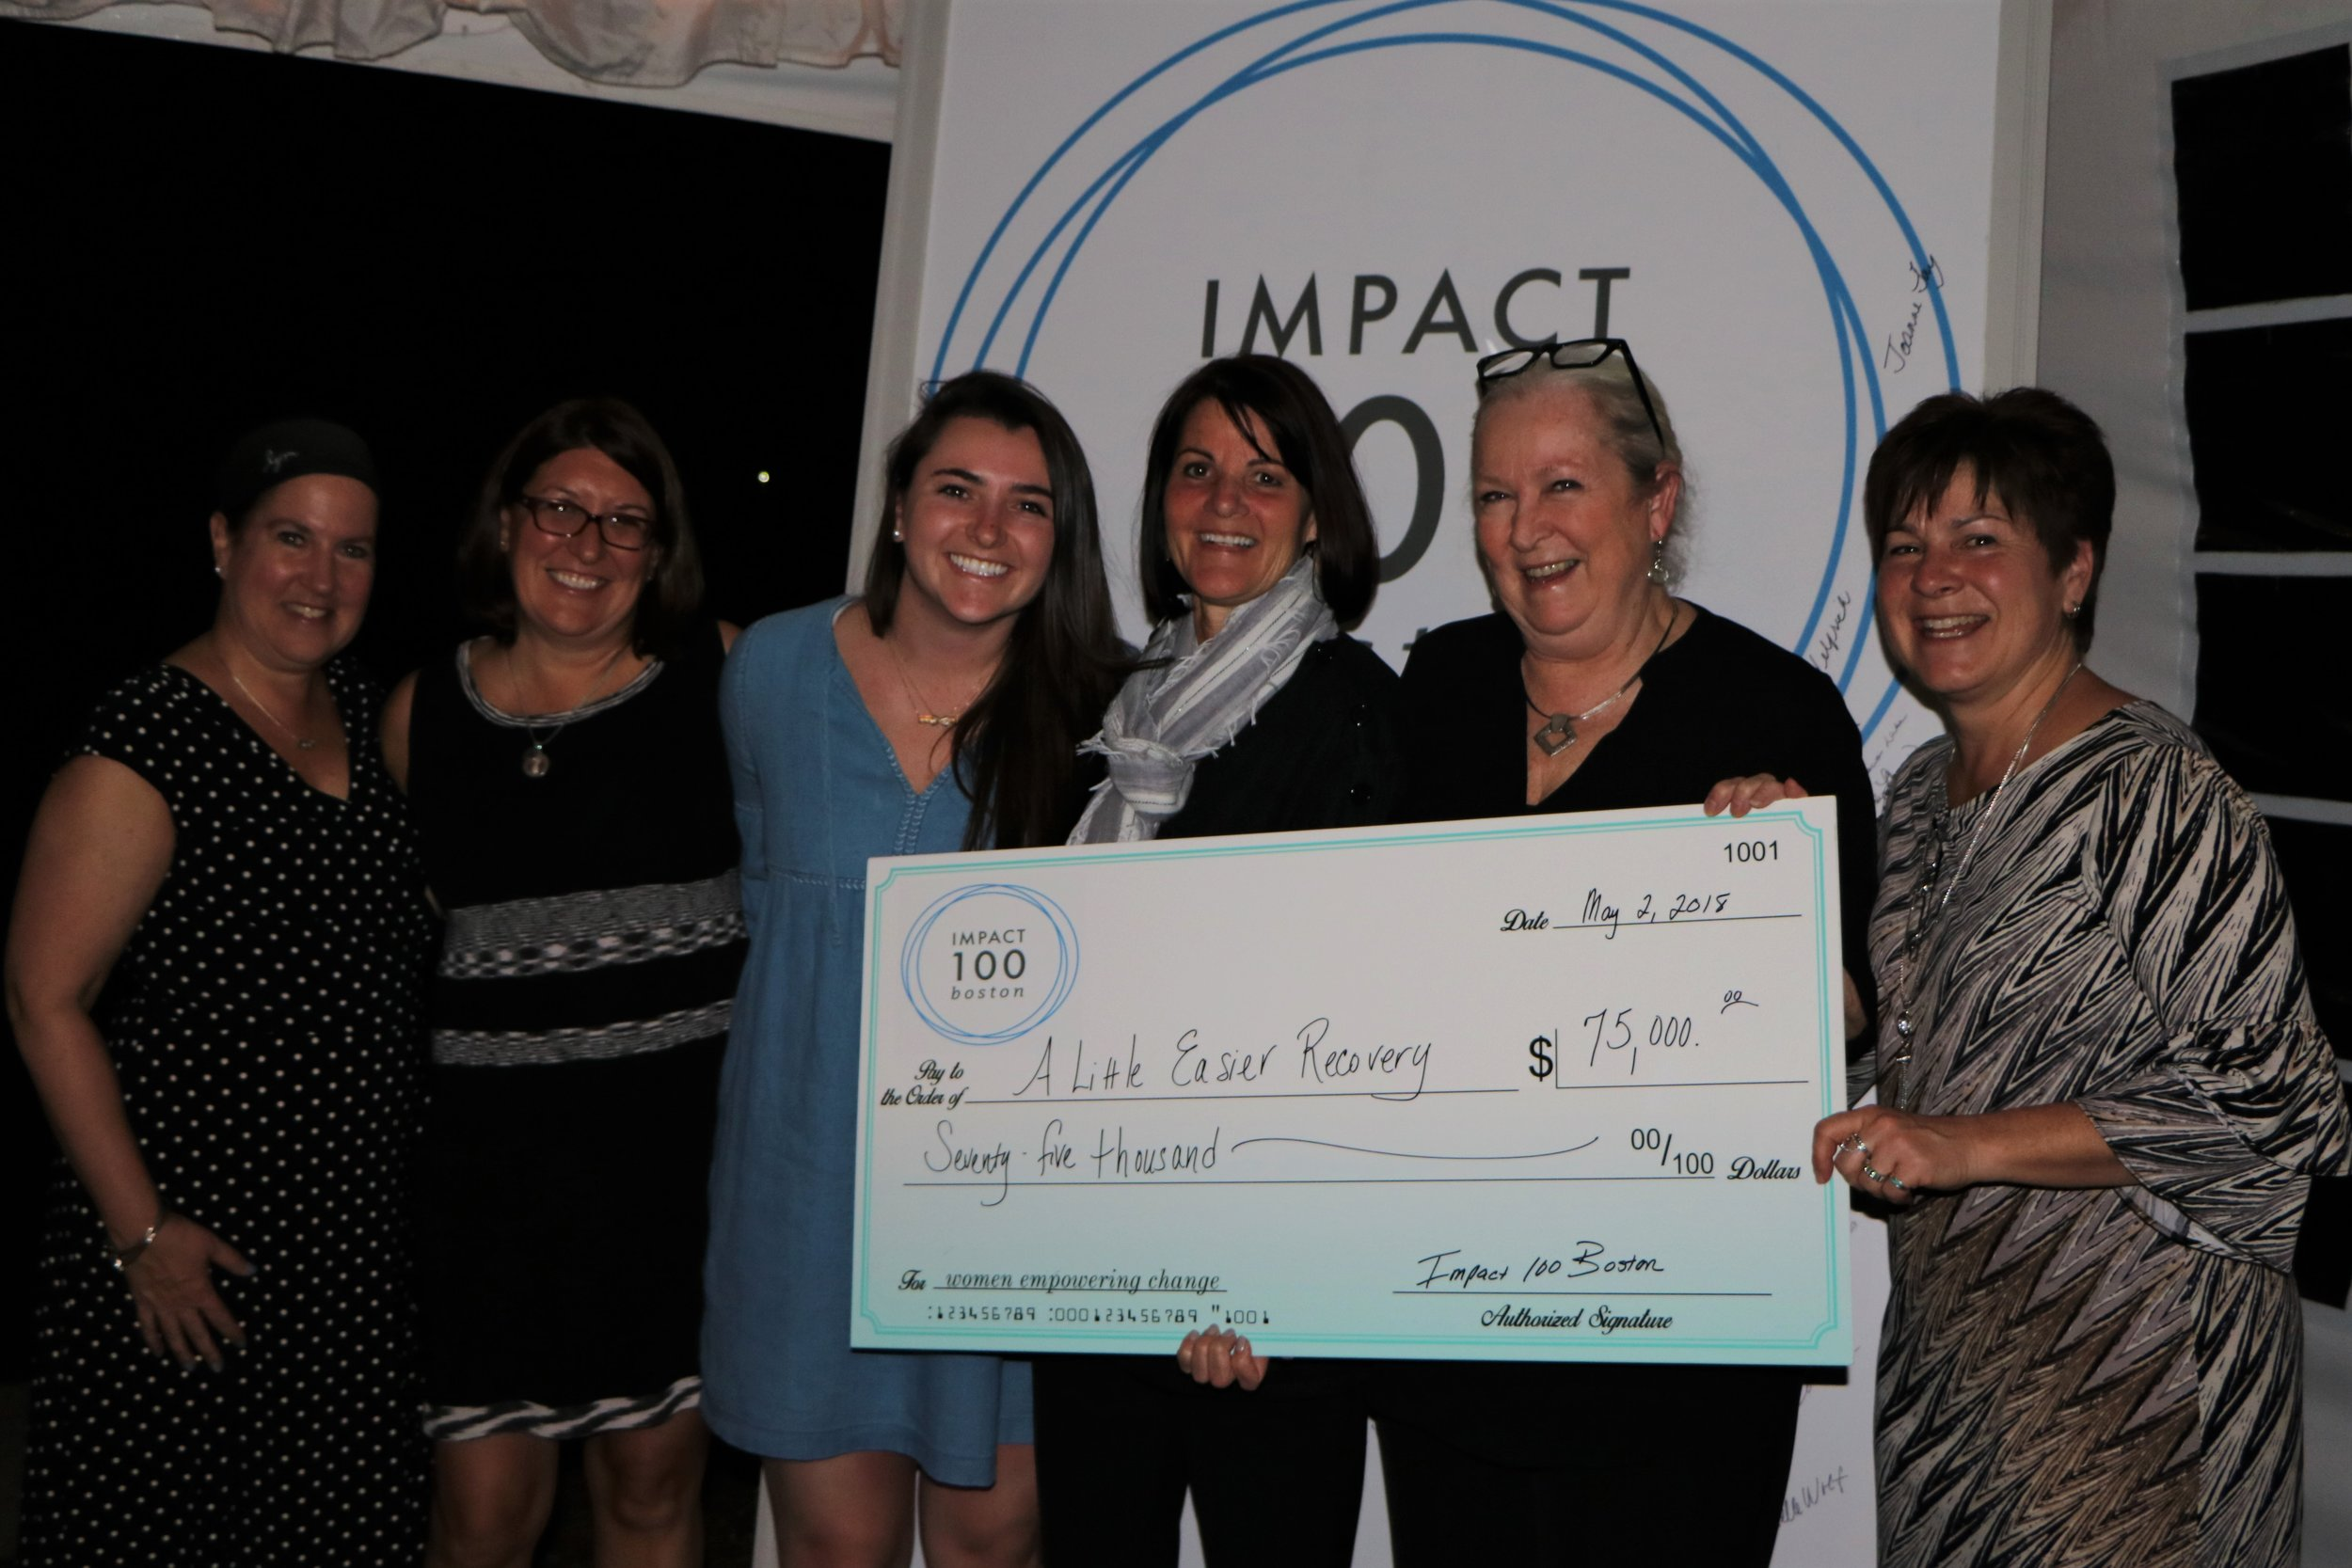 """We are thrilled and honored to be the Impact 100 Boston grant recipient and on behalf of all the women we will help through their traumatic journey of breast cancer treatment and recovery- -thank you, thank you!"" Cathy McGrath~Founder & Maureen Cardinal~Executive Director"